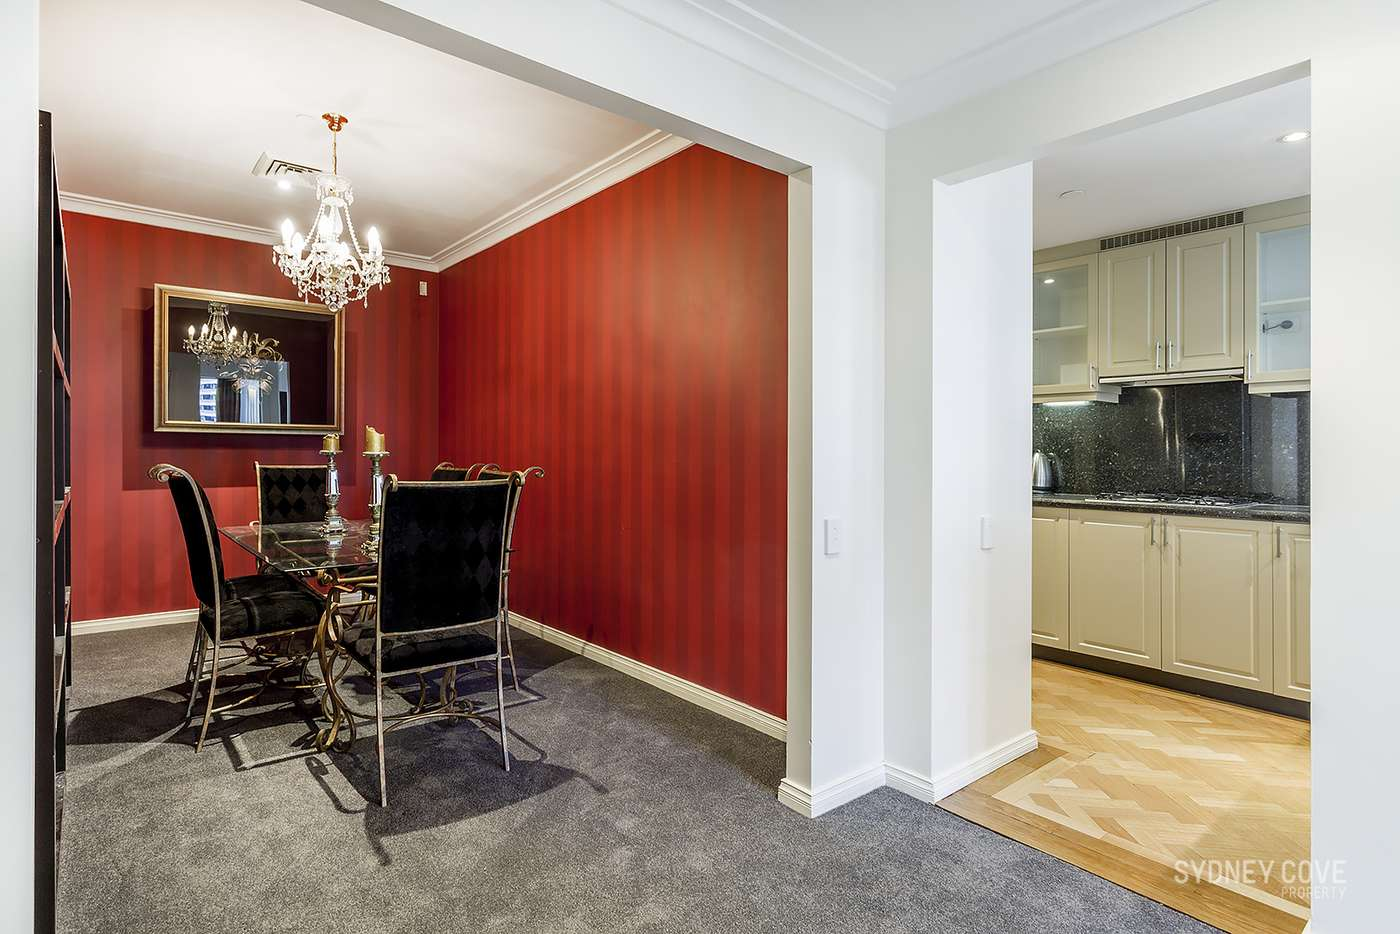 Seventh view of Homely apartment listing, 168 Kent St, Sydney NSW 2000